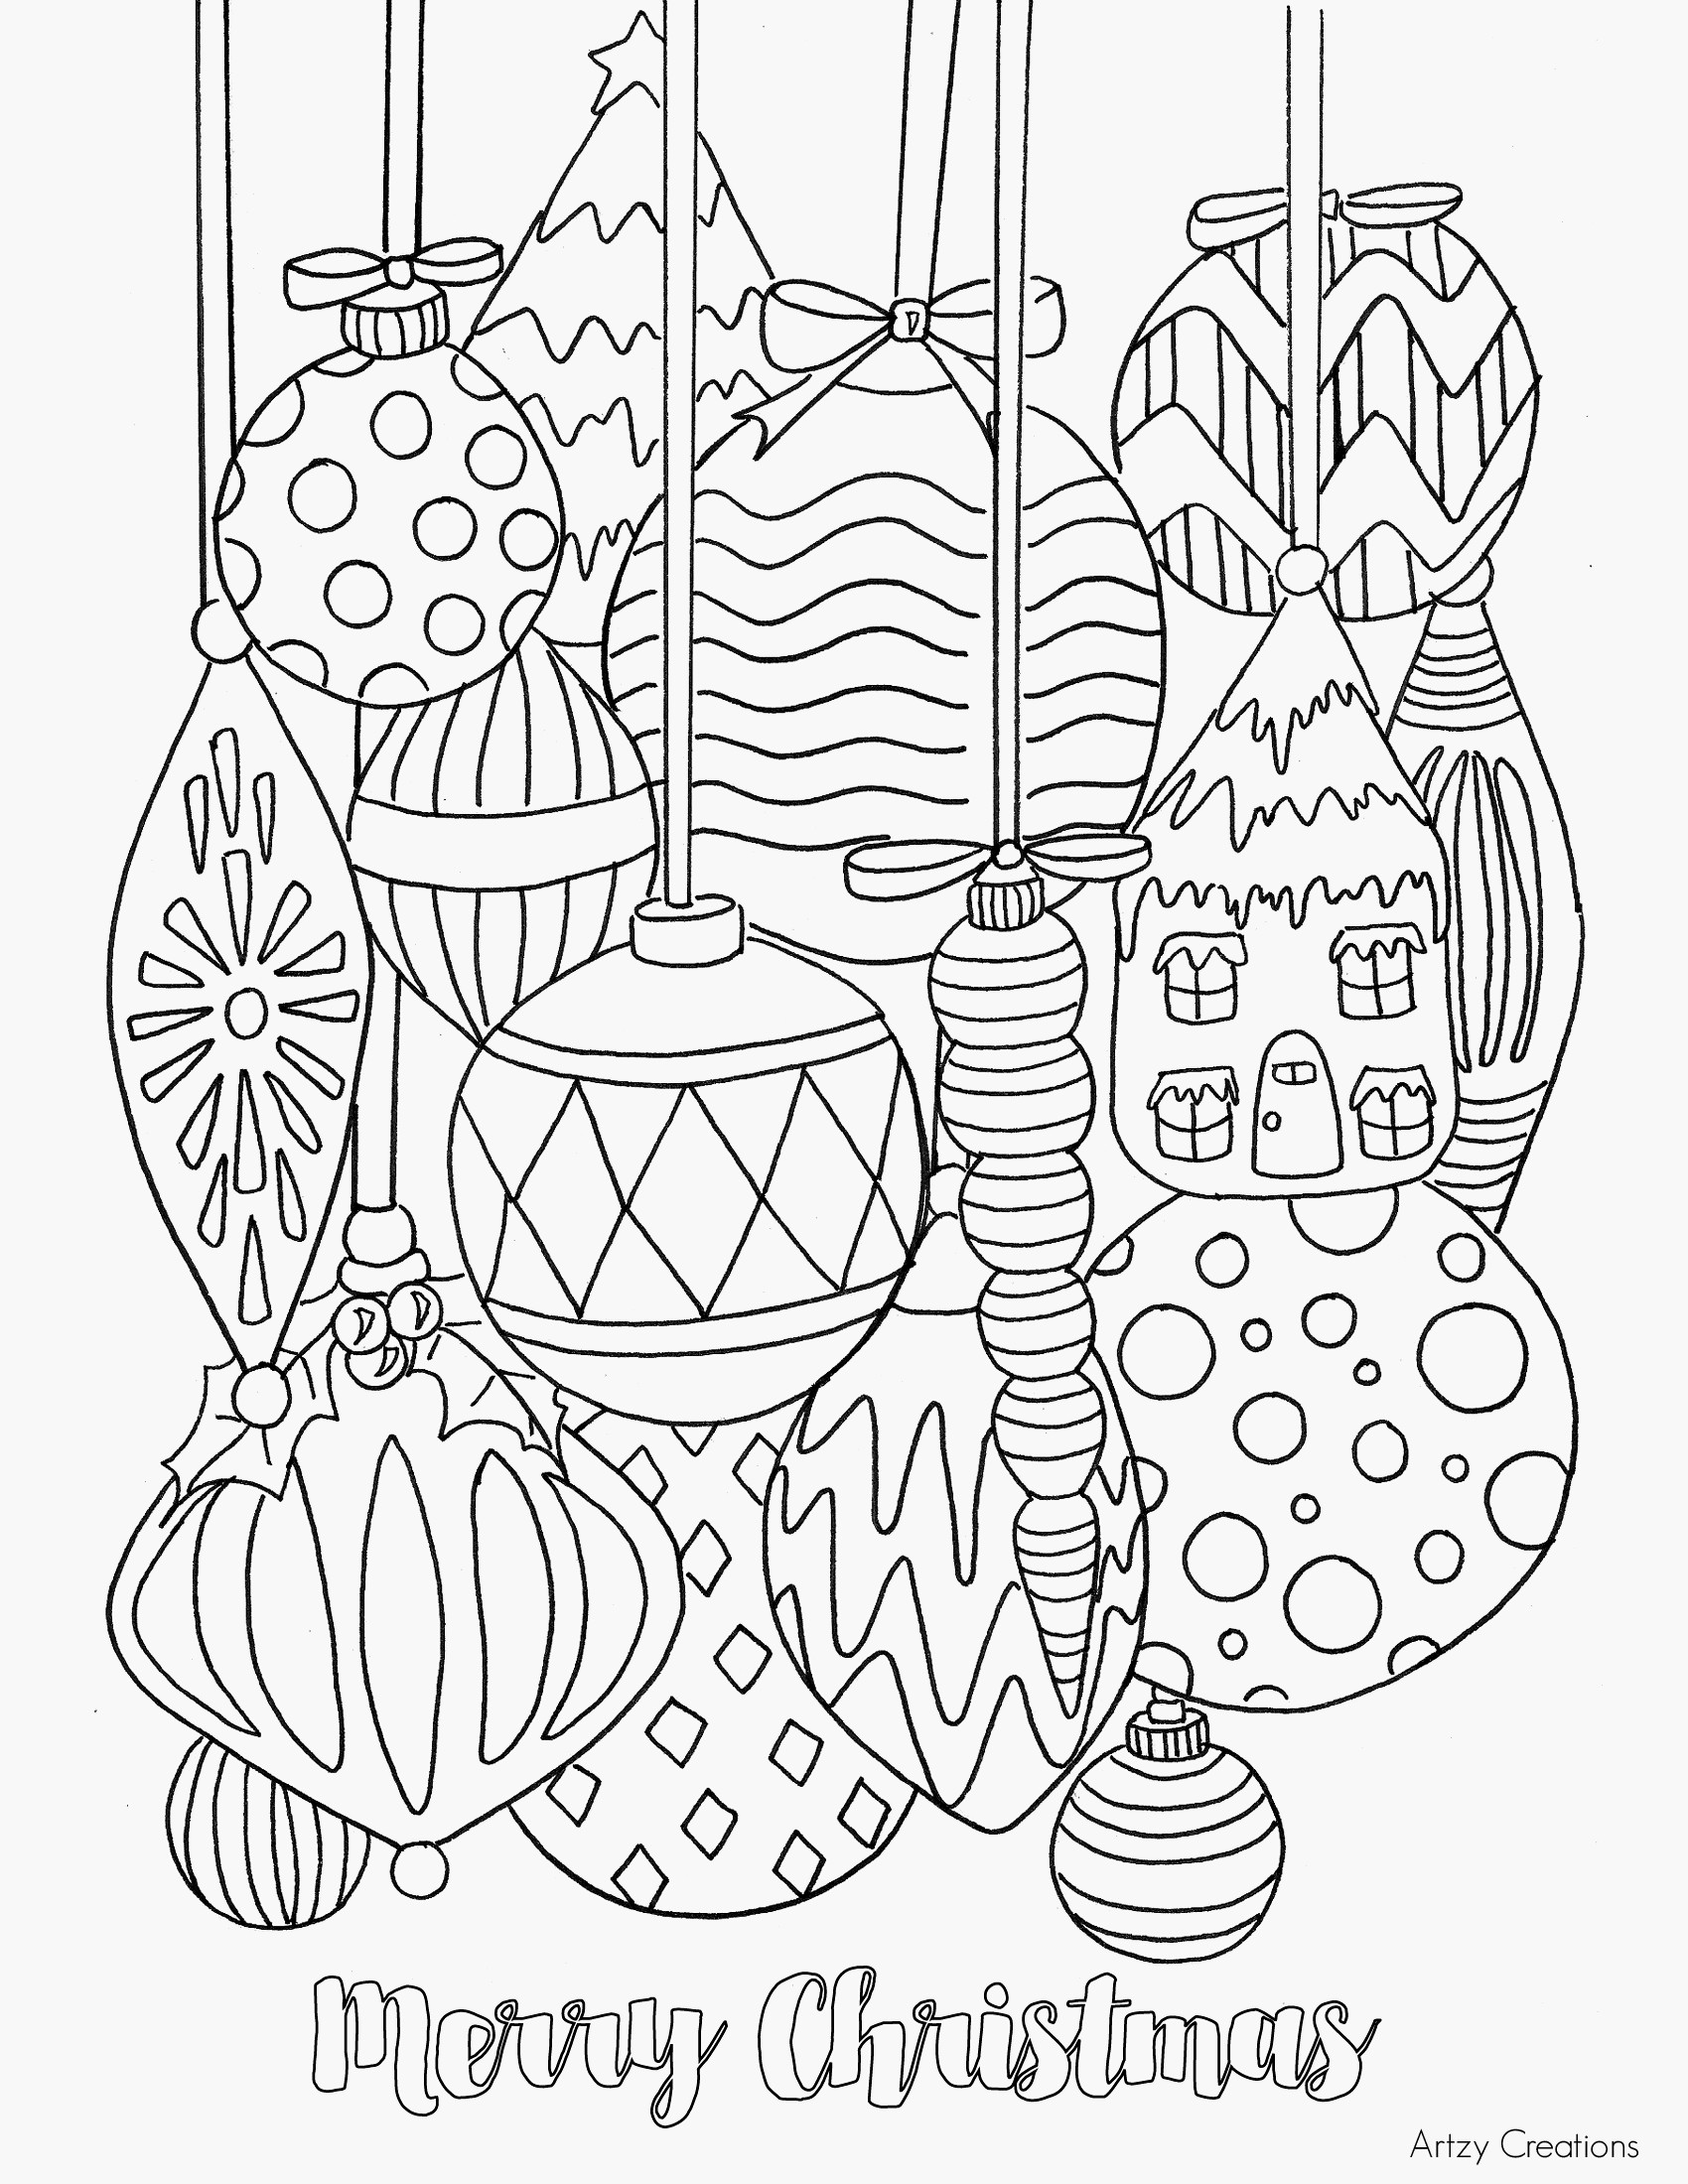 Christmas Heart Coloring Page With 70 Winter Adult Pages Coloringpagess Bid